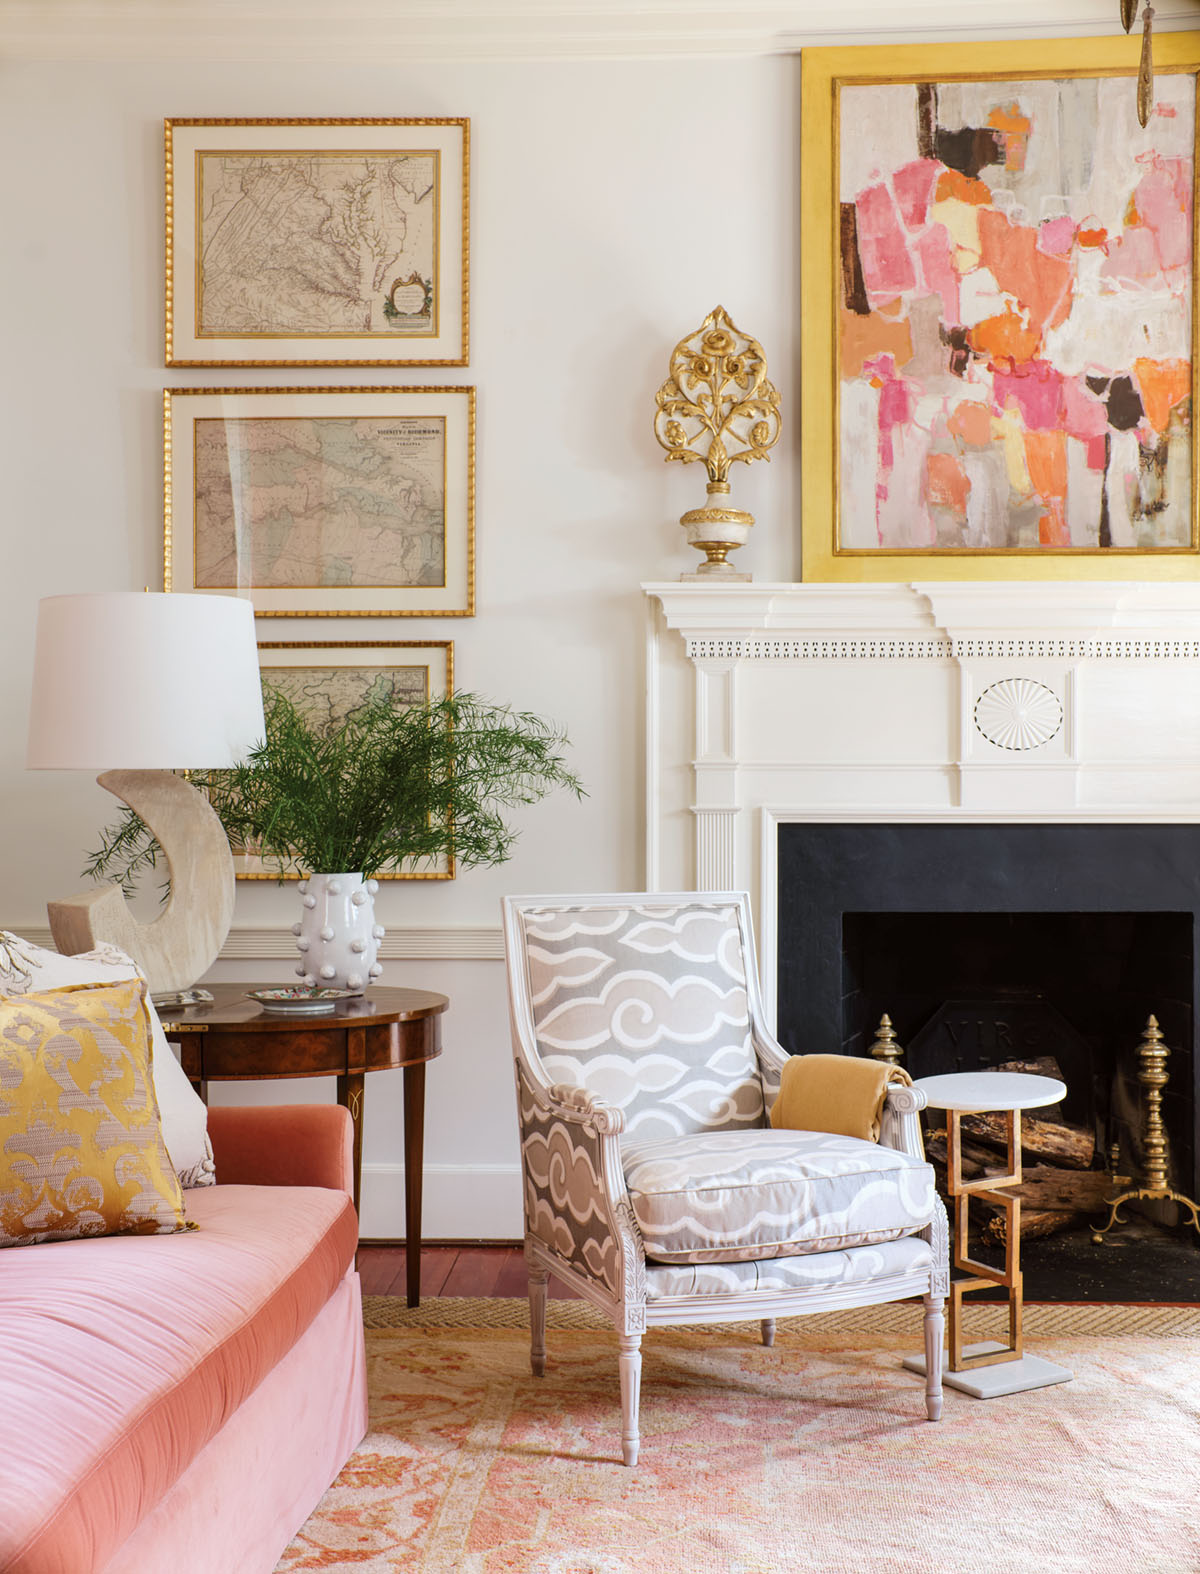 a colorful abstract painting hangs above a painted white mantel.